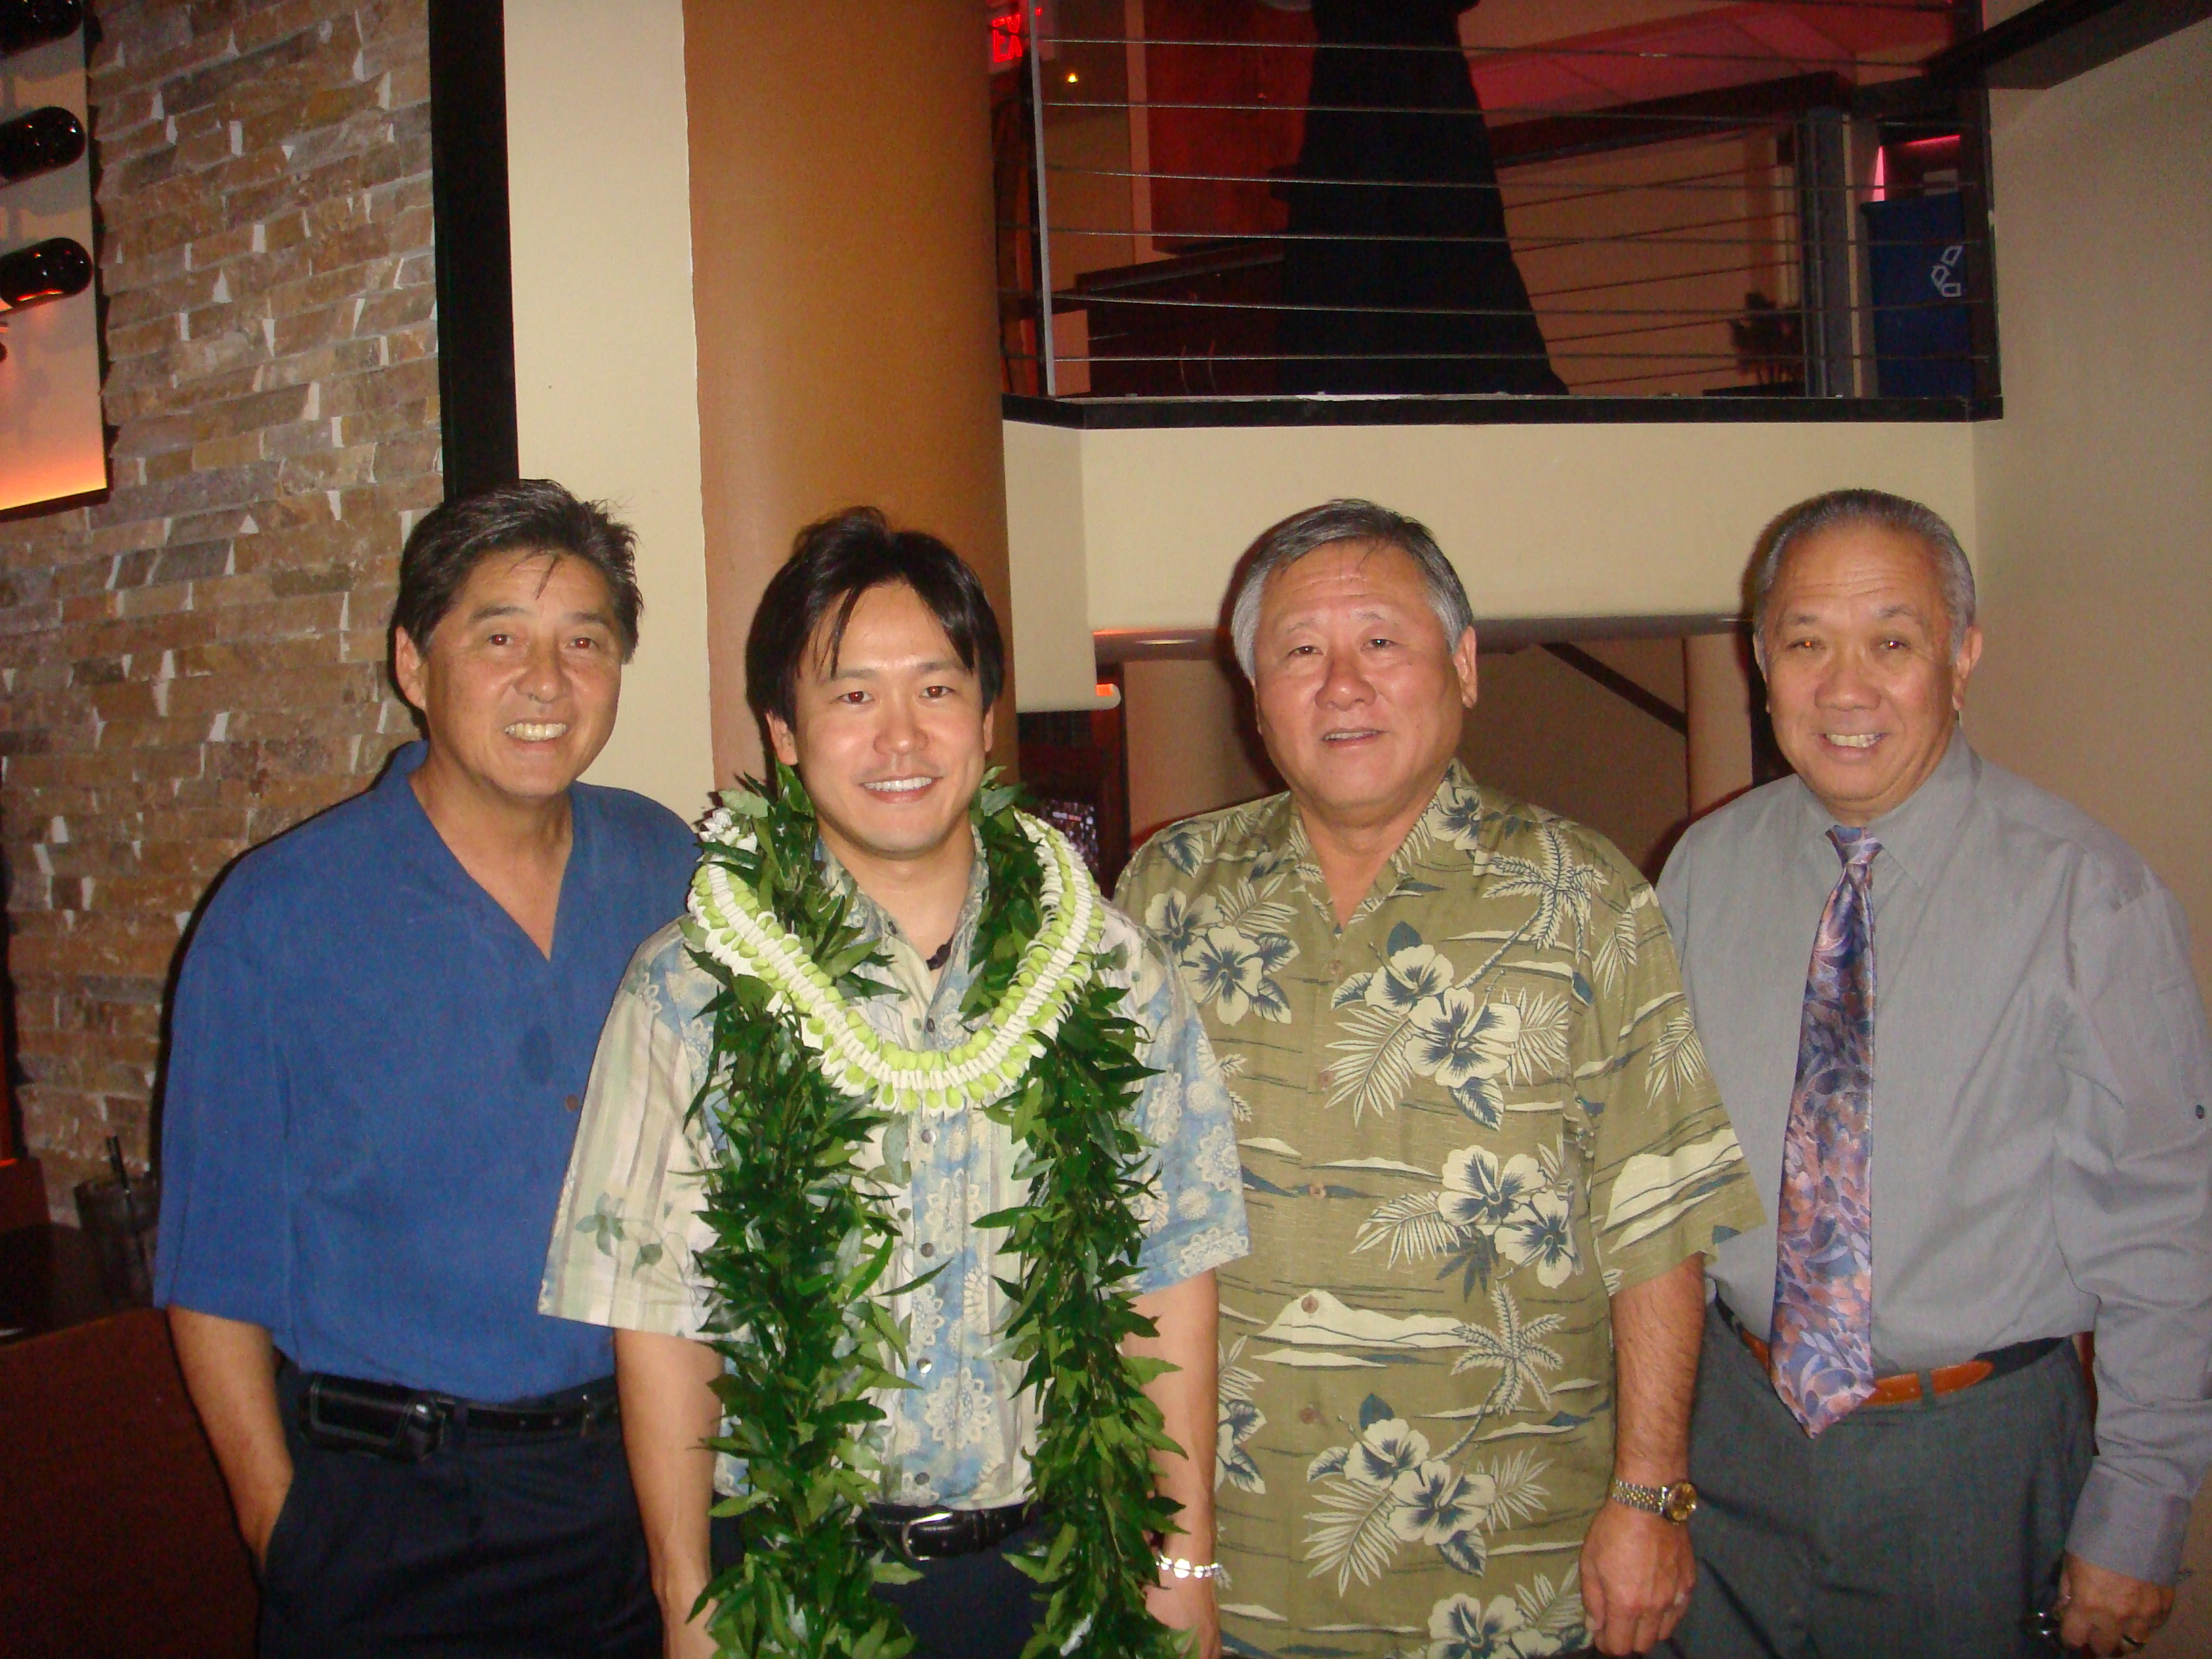 Rep. Jerry L. Chang, Rep. Jon Riki Karamatsu, Rep. Ken Ito, & Speaker Calvin K.Y. Say at Karamatsu's March 11, 2009 fundraiser at Bonsai Restaurant.